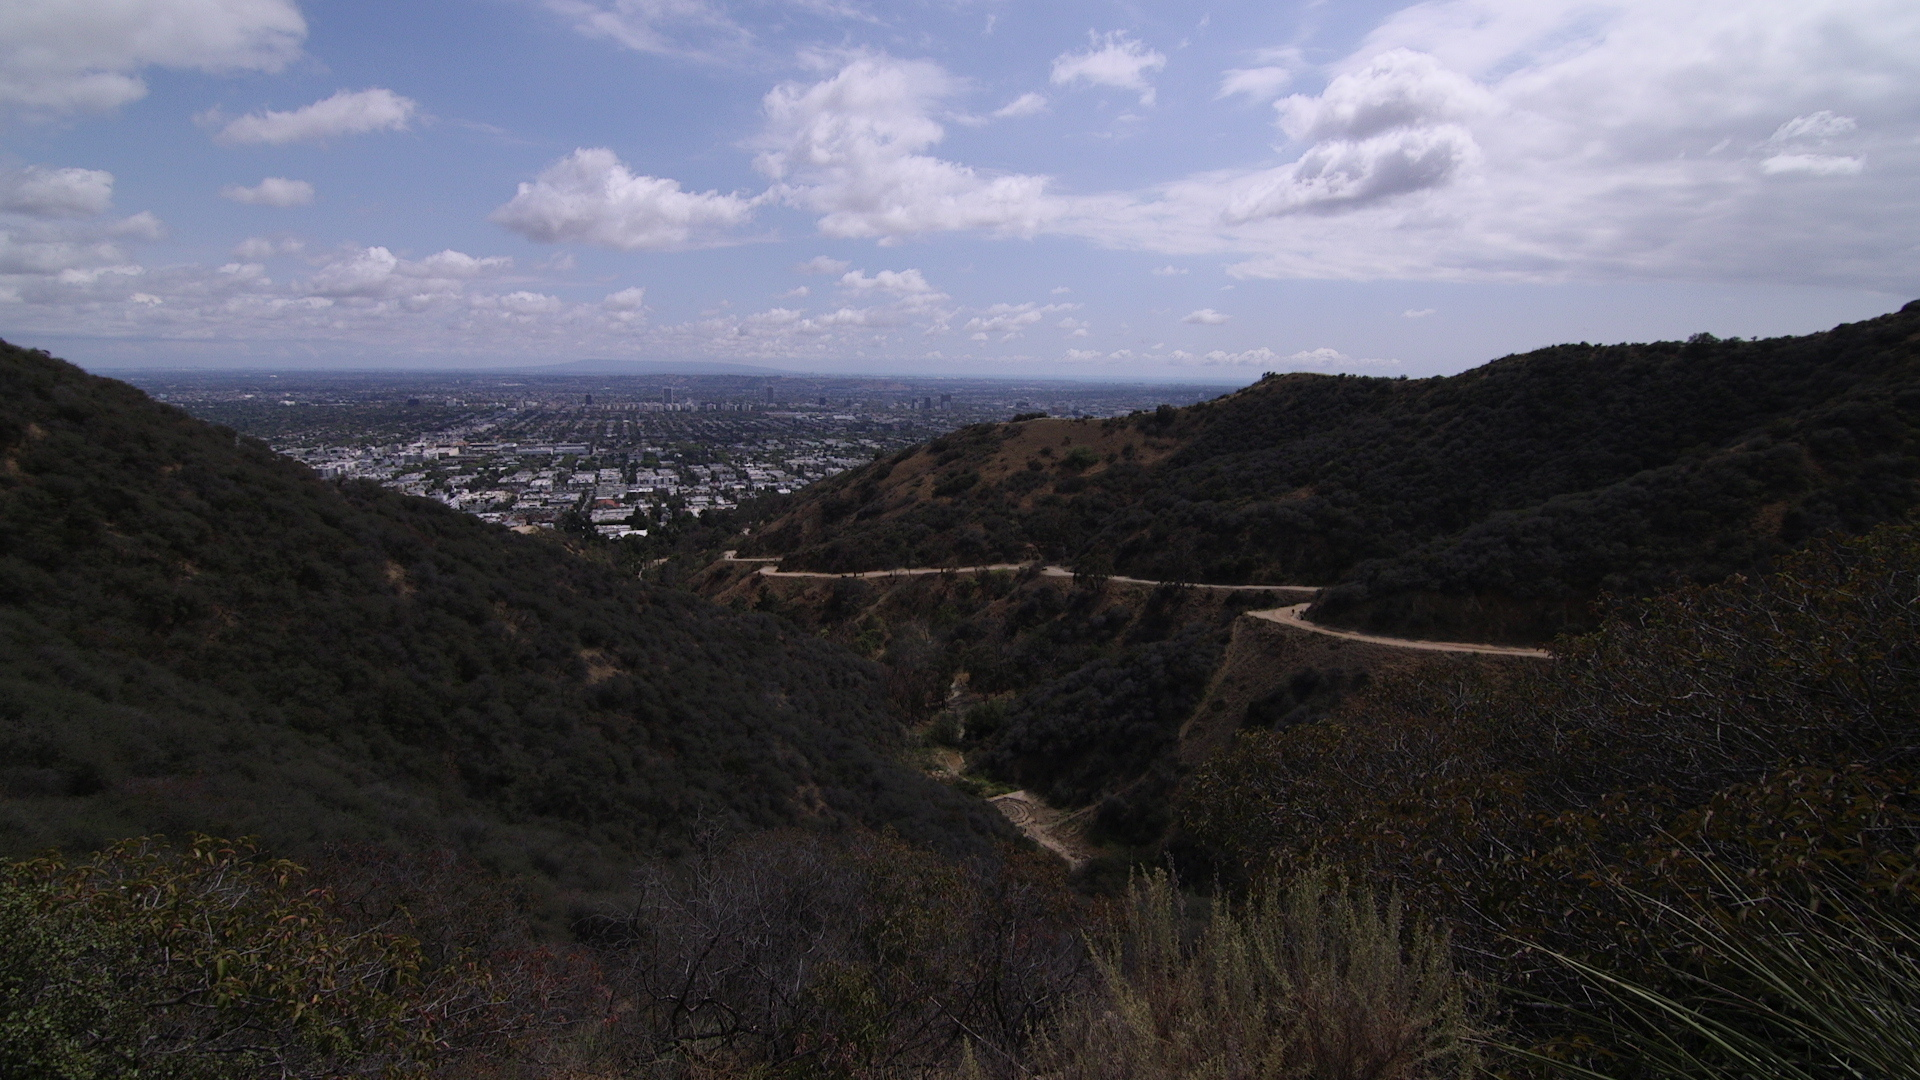 A hiking trail in the Runyon Canyon